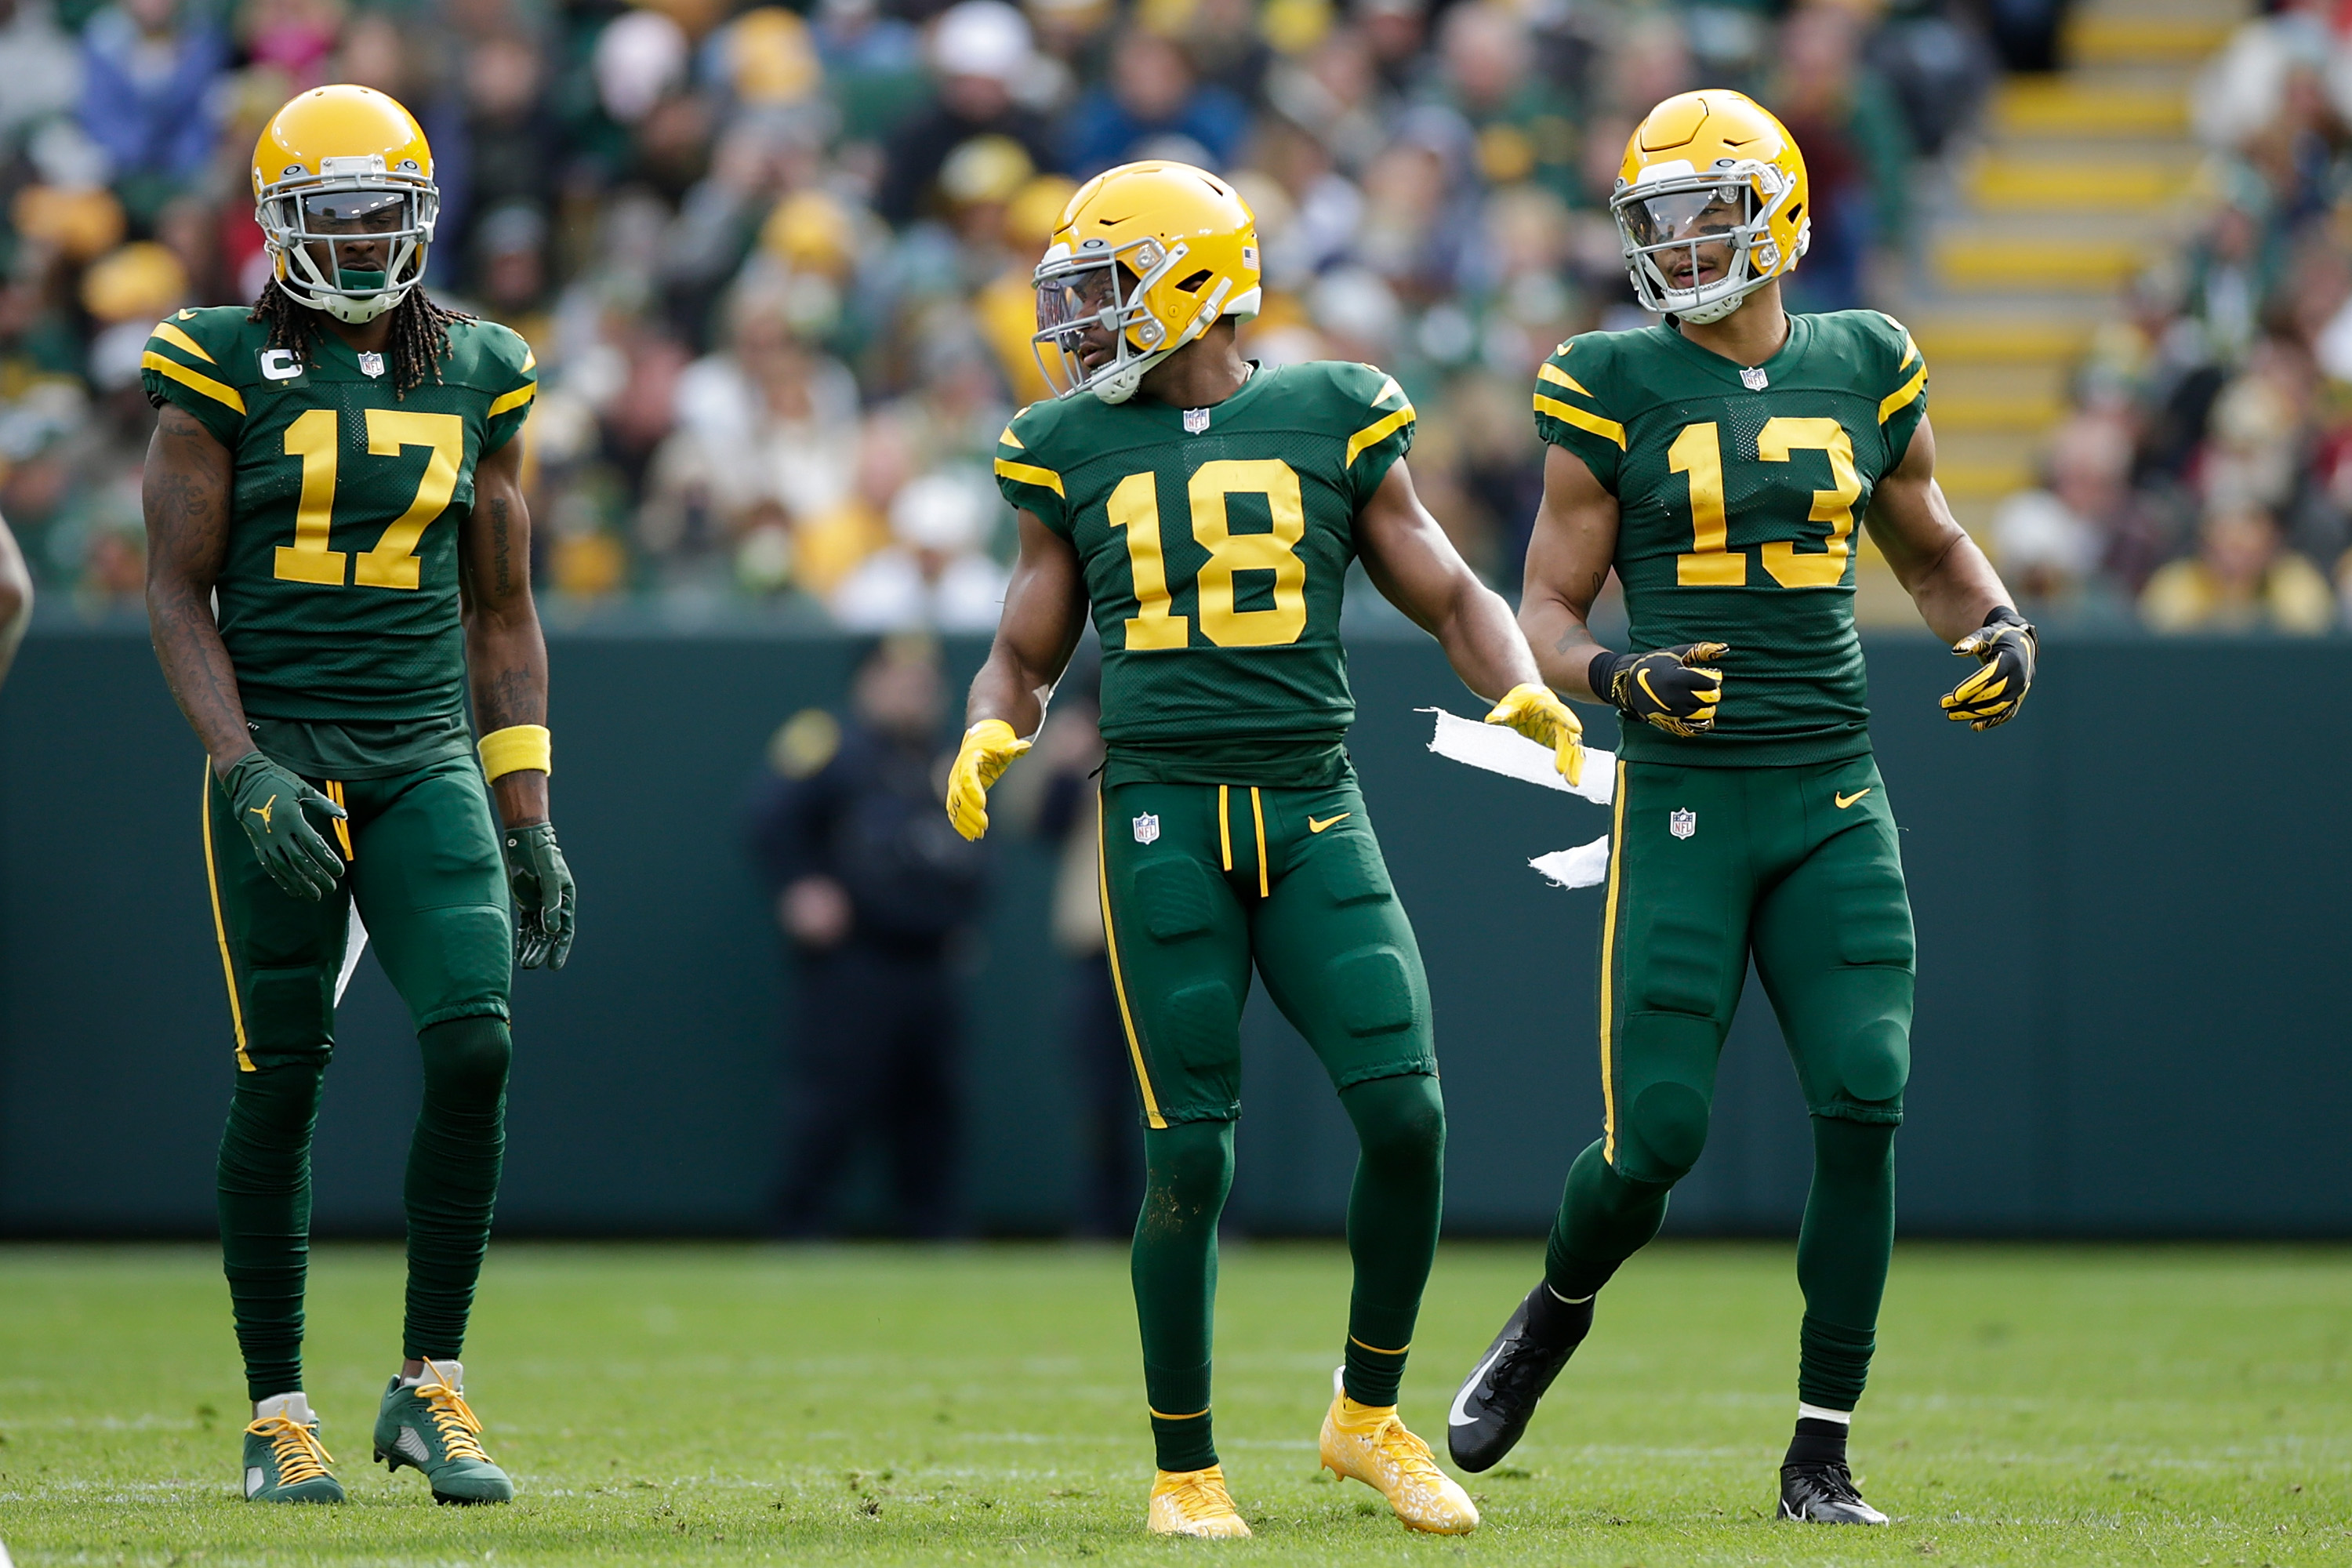 Davante Adams #17, Randall Cobb #18 and Allen Lazard #13 of the Green Bay Packers line up before the snap against the Washington Football Team at Lambeau Field on October 24, 2021 in Green Bay, Wisconsin. Green Bay defeated Washington 24-10.